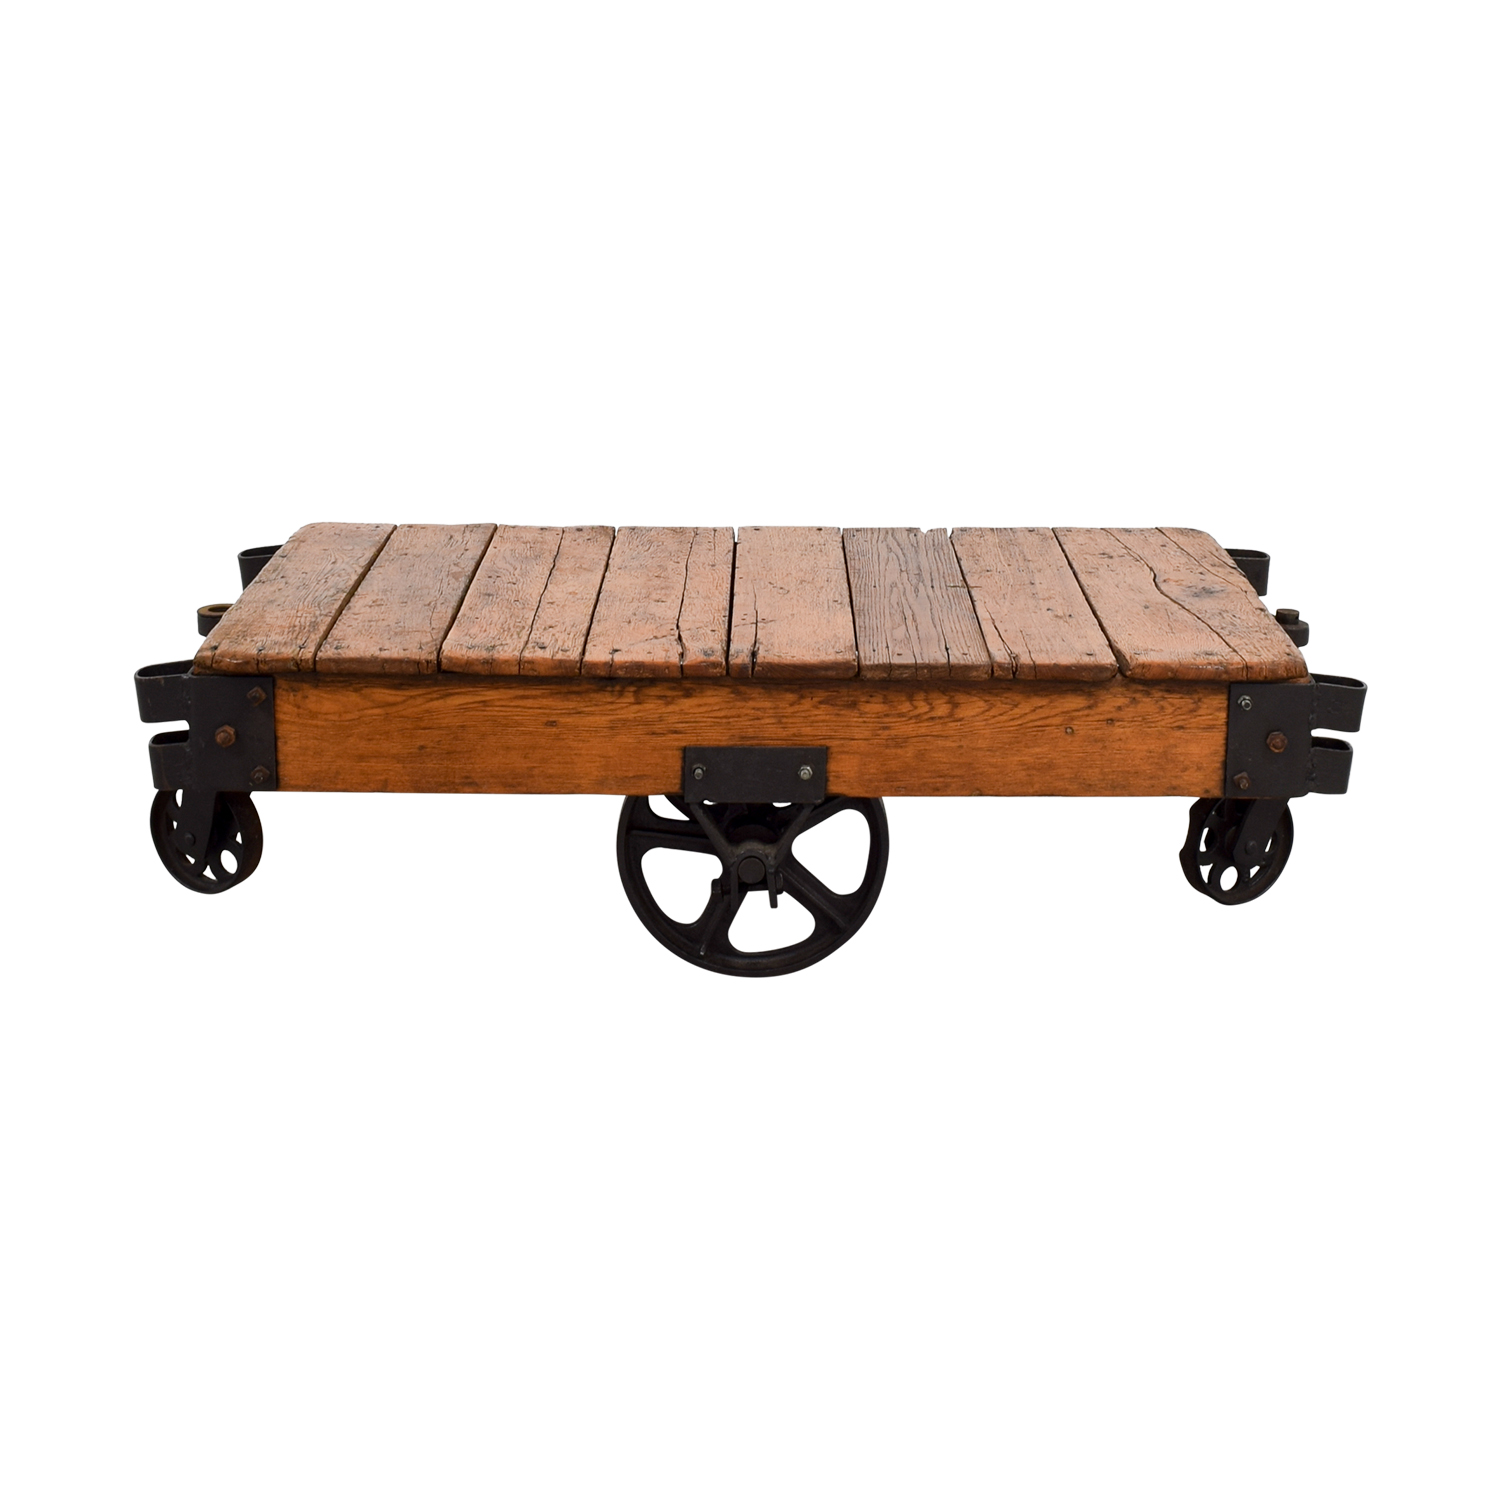 Restoration Hardware Rustic Coffee Table With Wheels Tables